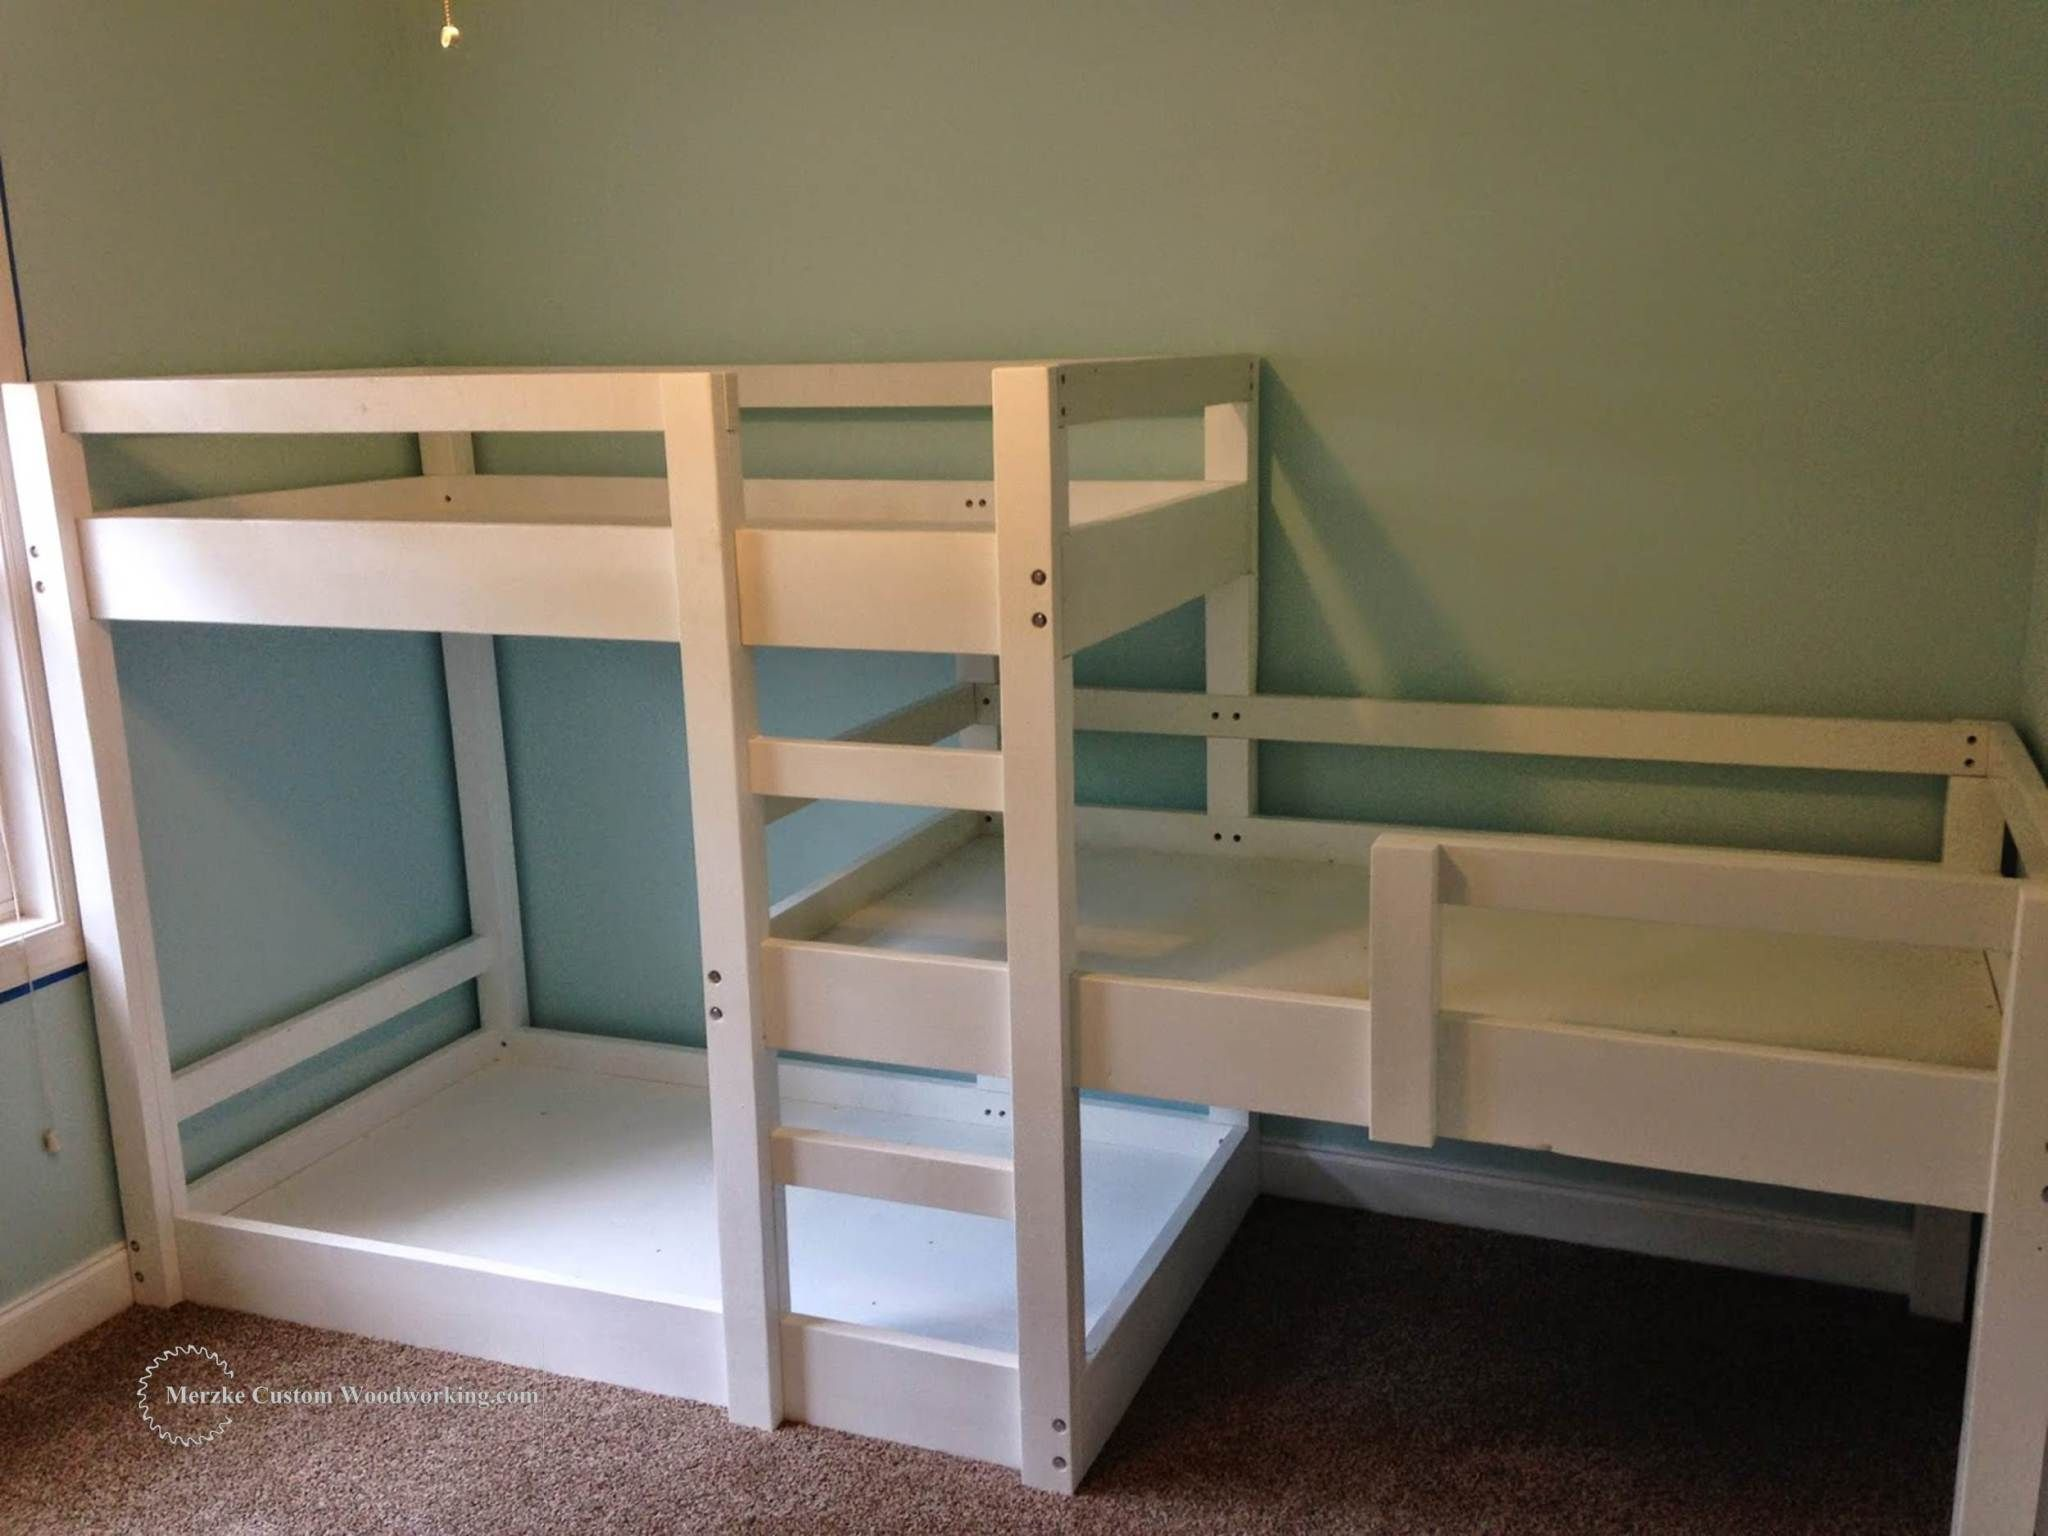 Best 25 Triple bunk beds ideas on Pinterest